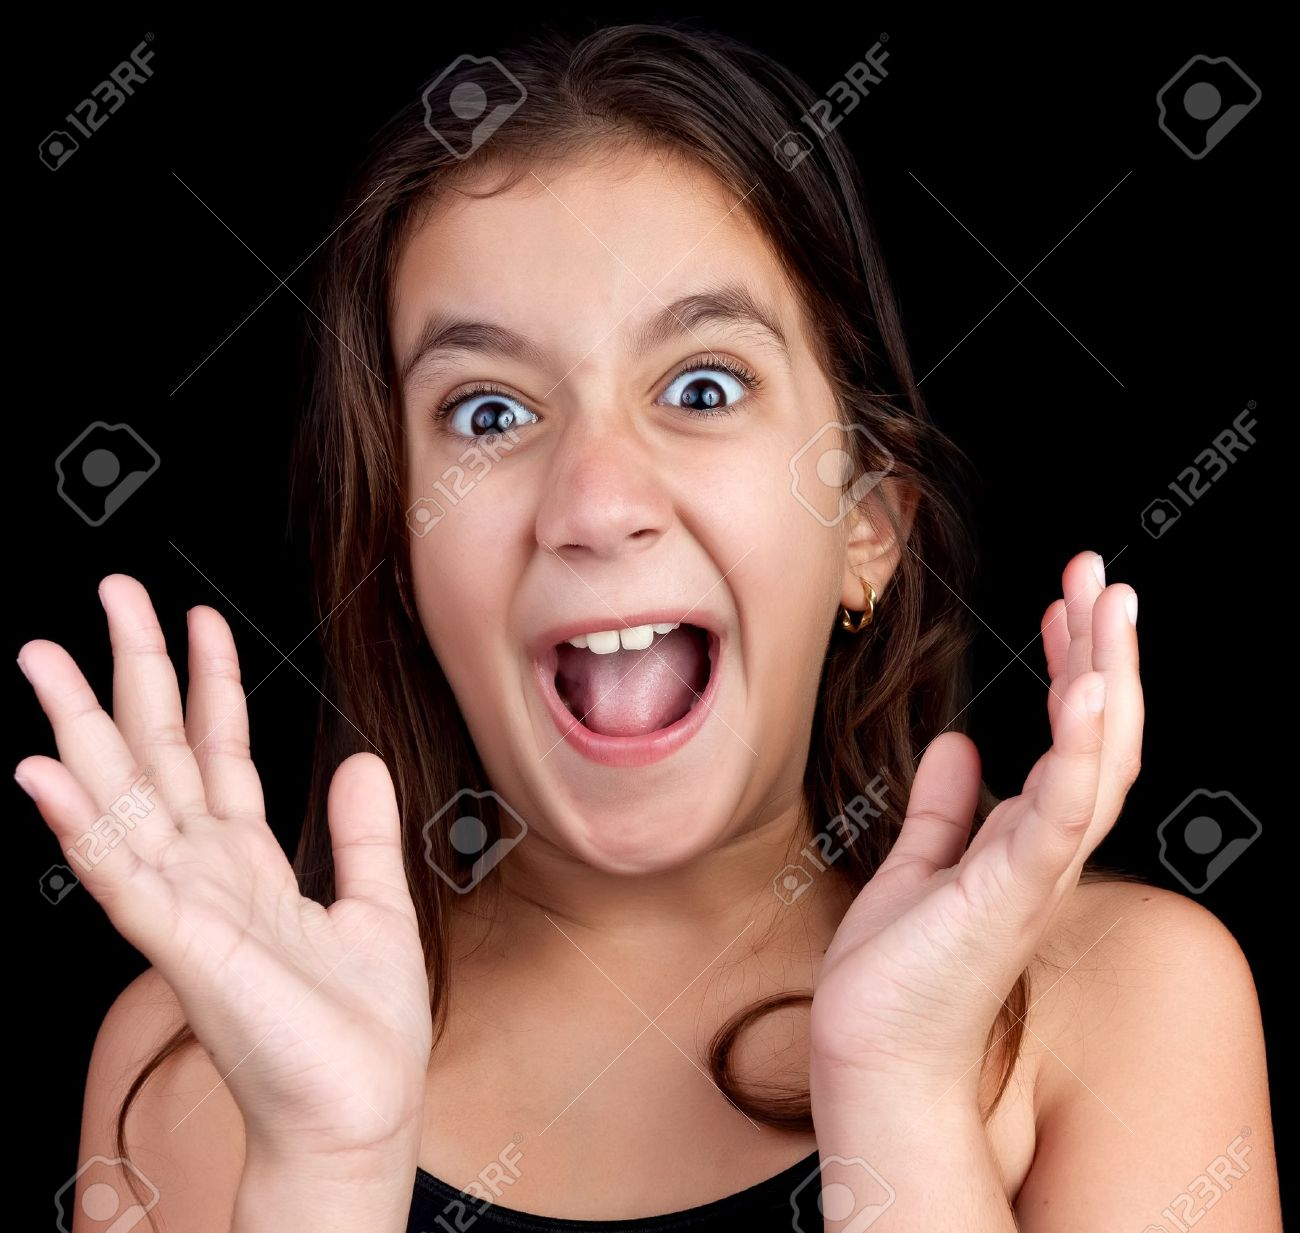 Portrait of a very surprised or scared girl screaming loudly on a black background Stock Photo - 13162522